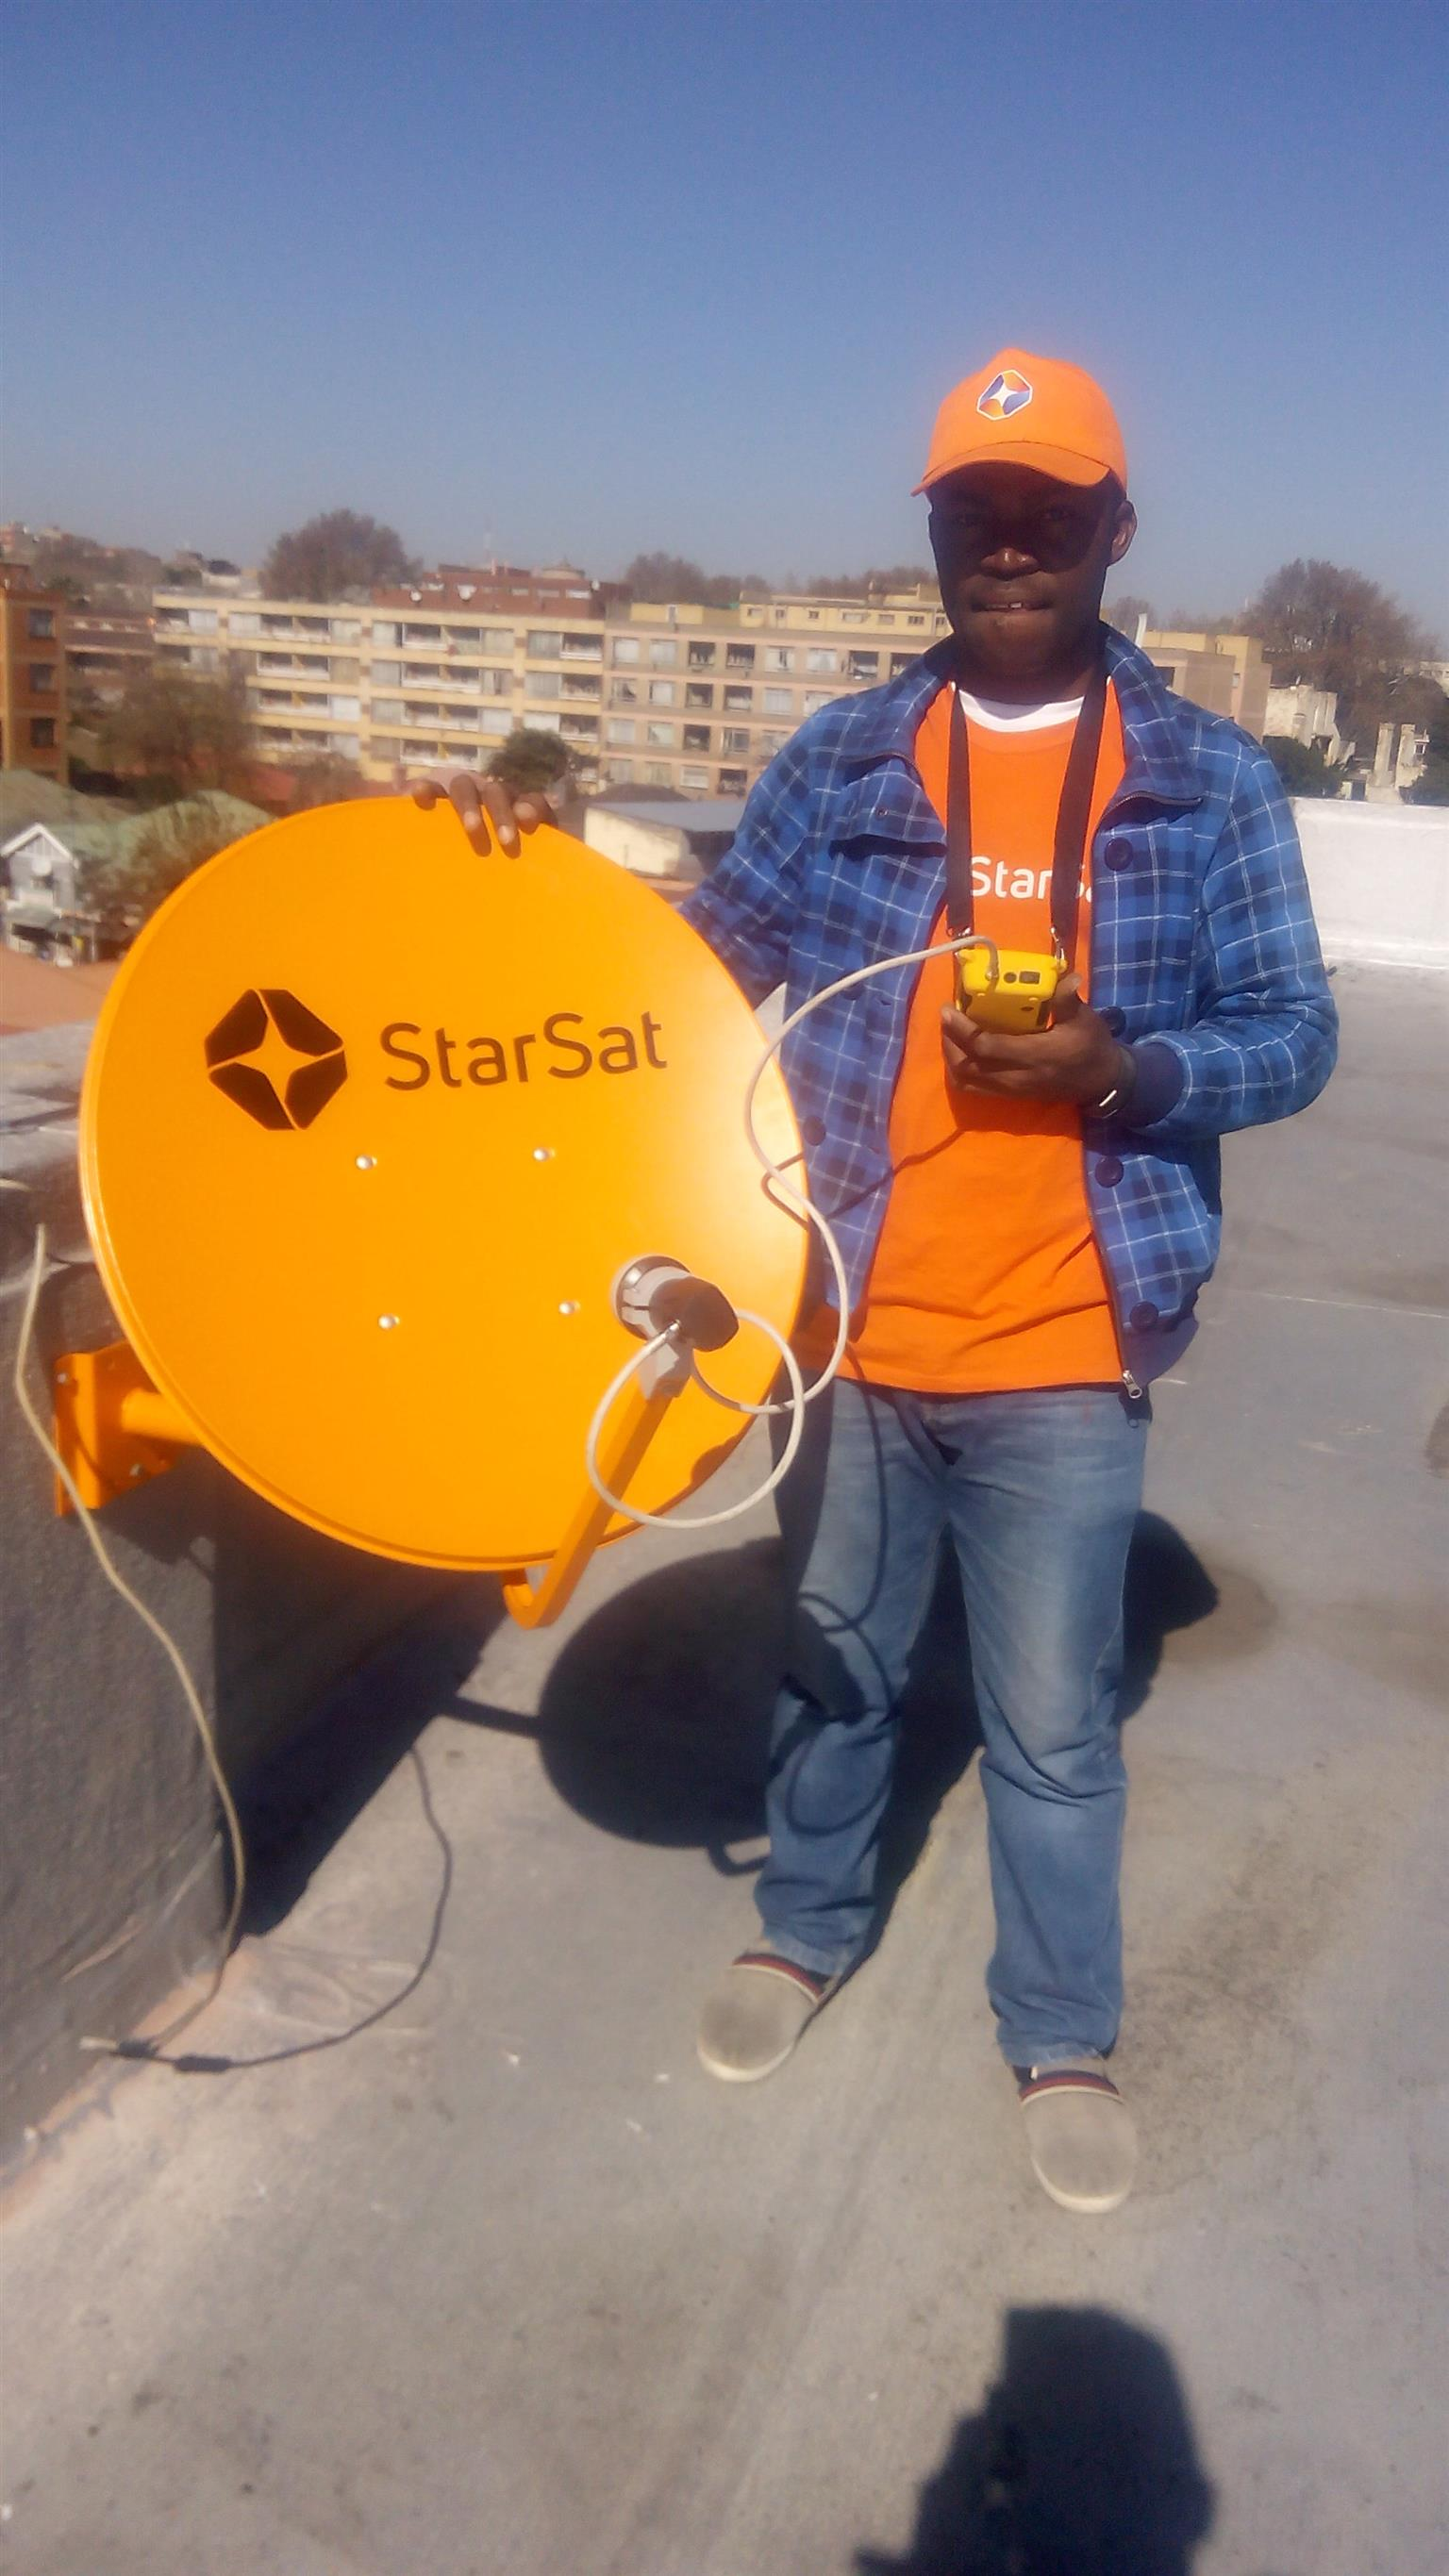 Installation of STARSAT | Junk Mail